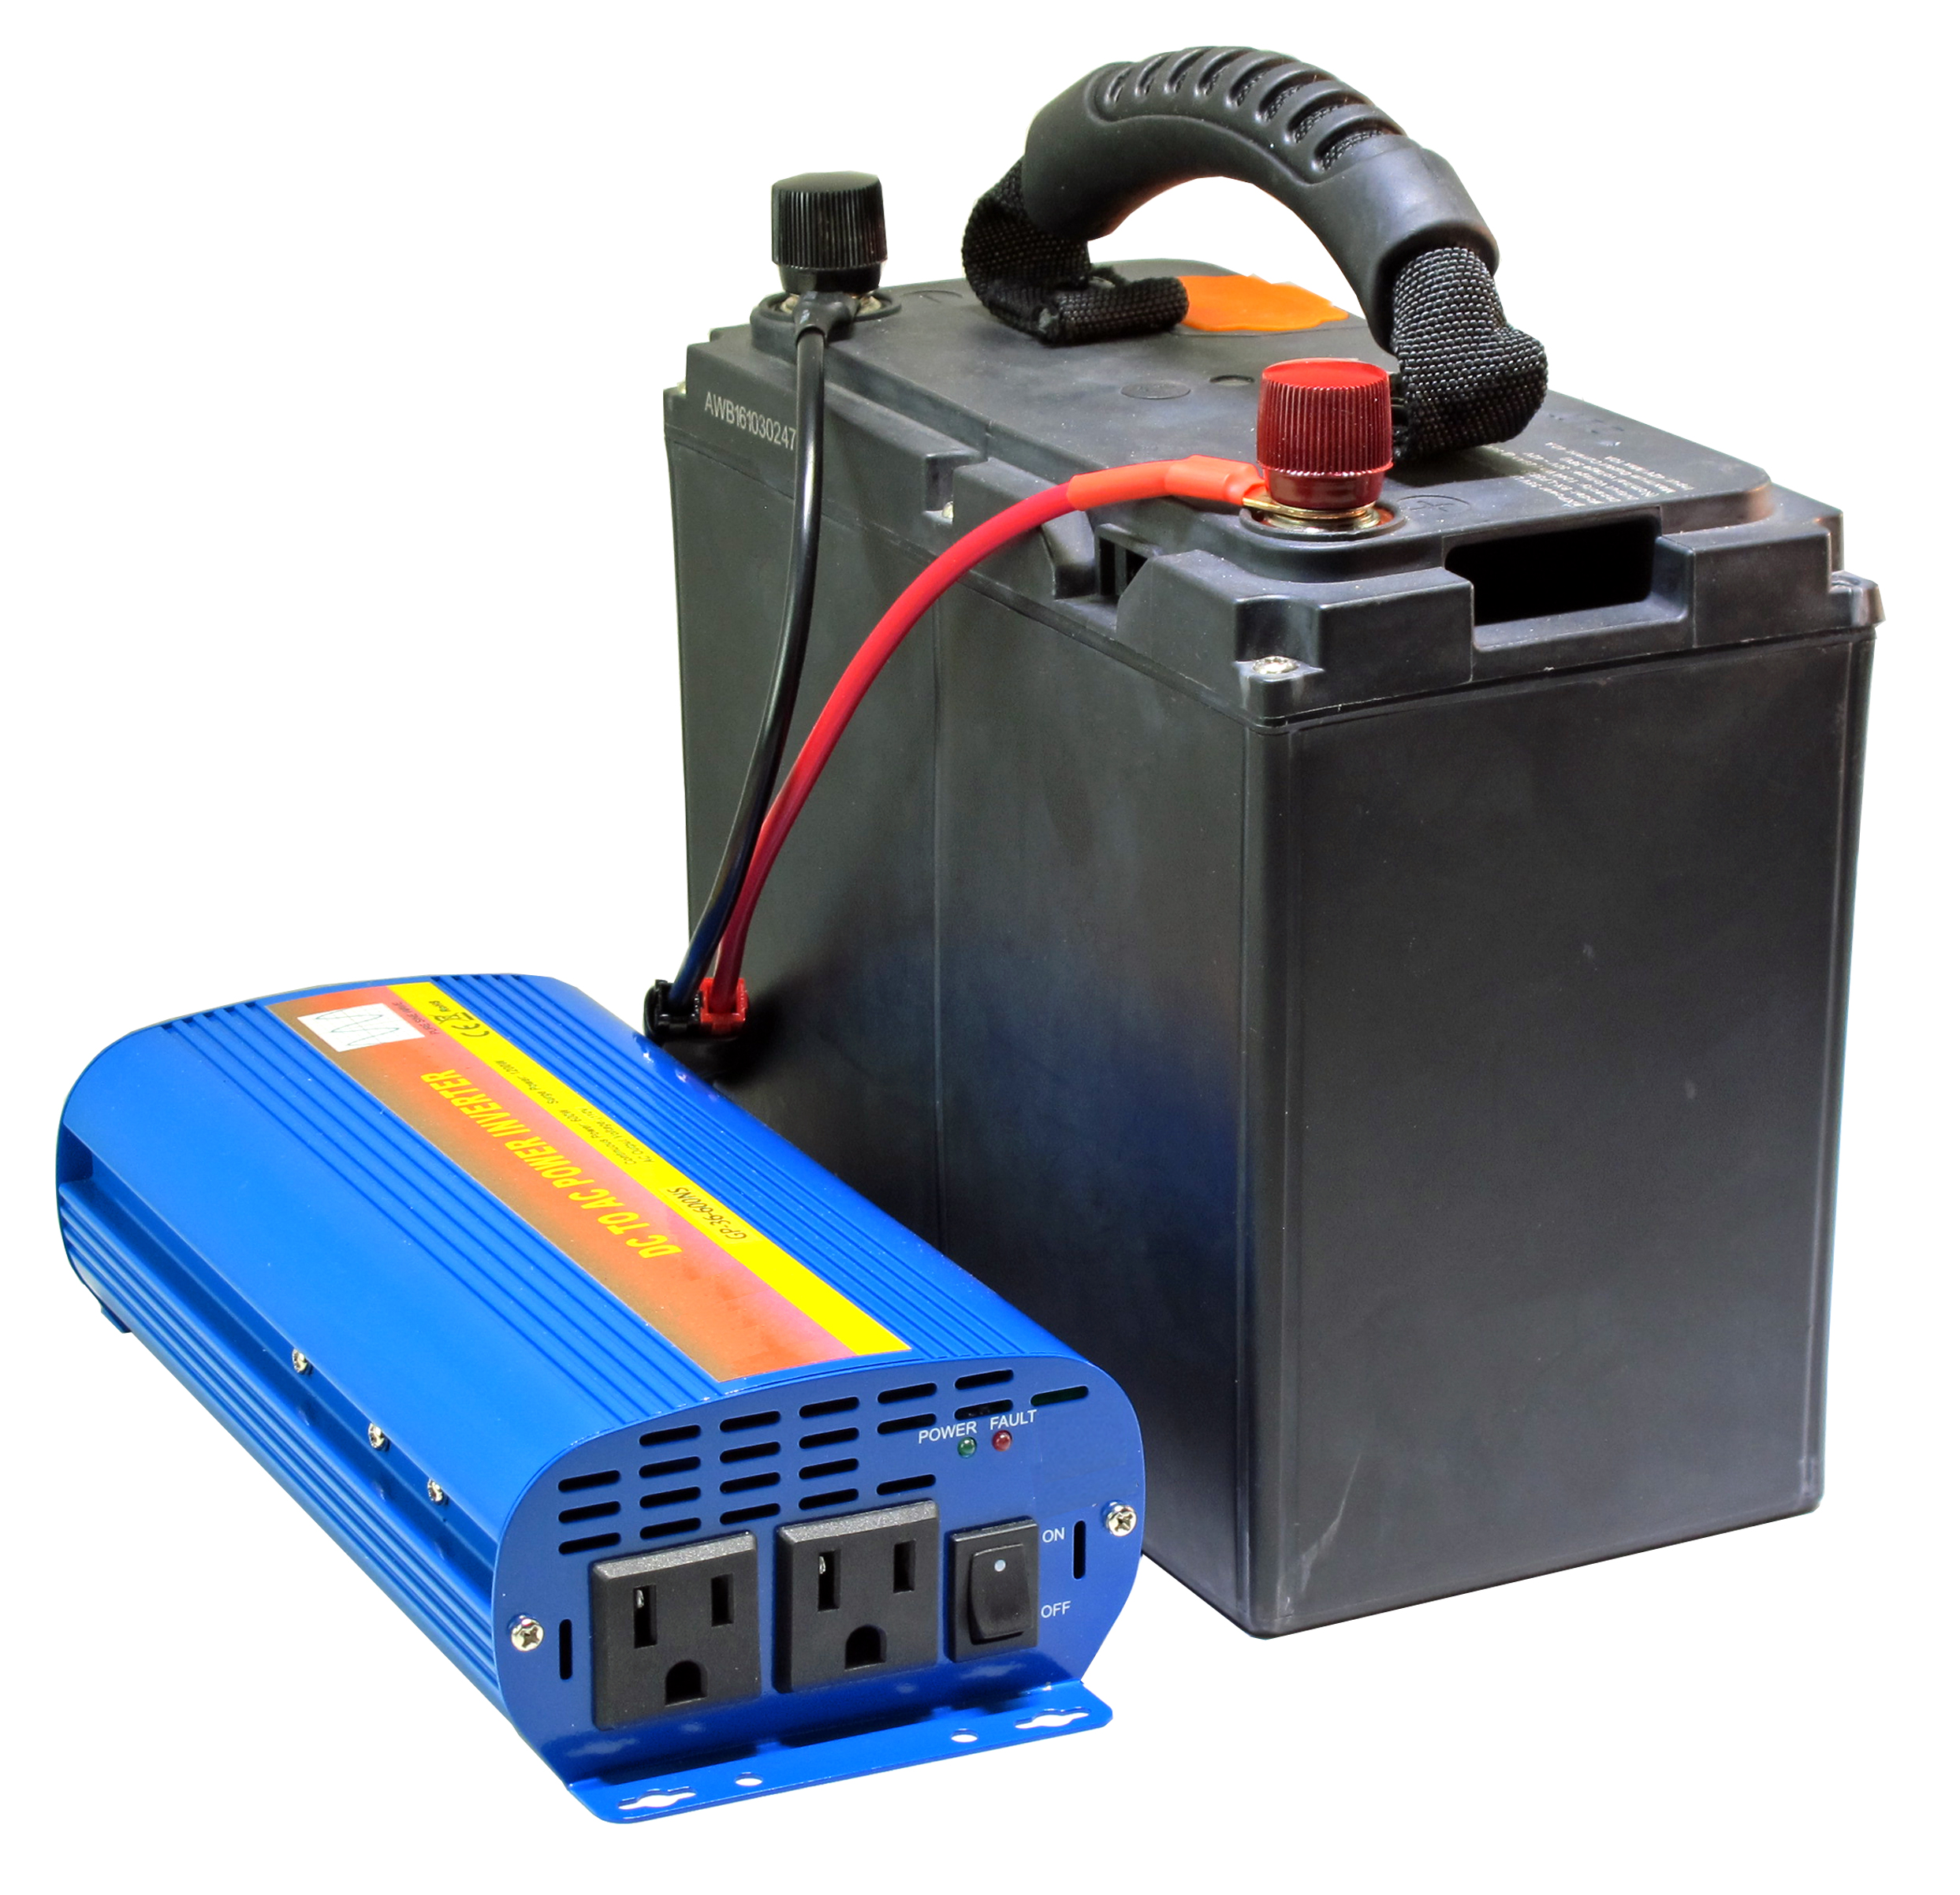 110V Portable  AC Power Station XP1500 - Super High Capacity 1044Wh Battery with 500W Pure Sine Wave 110V AC Inverter